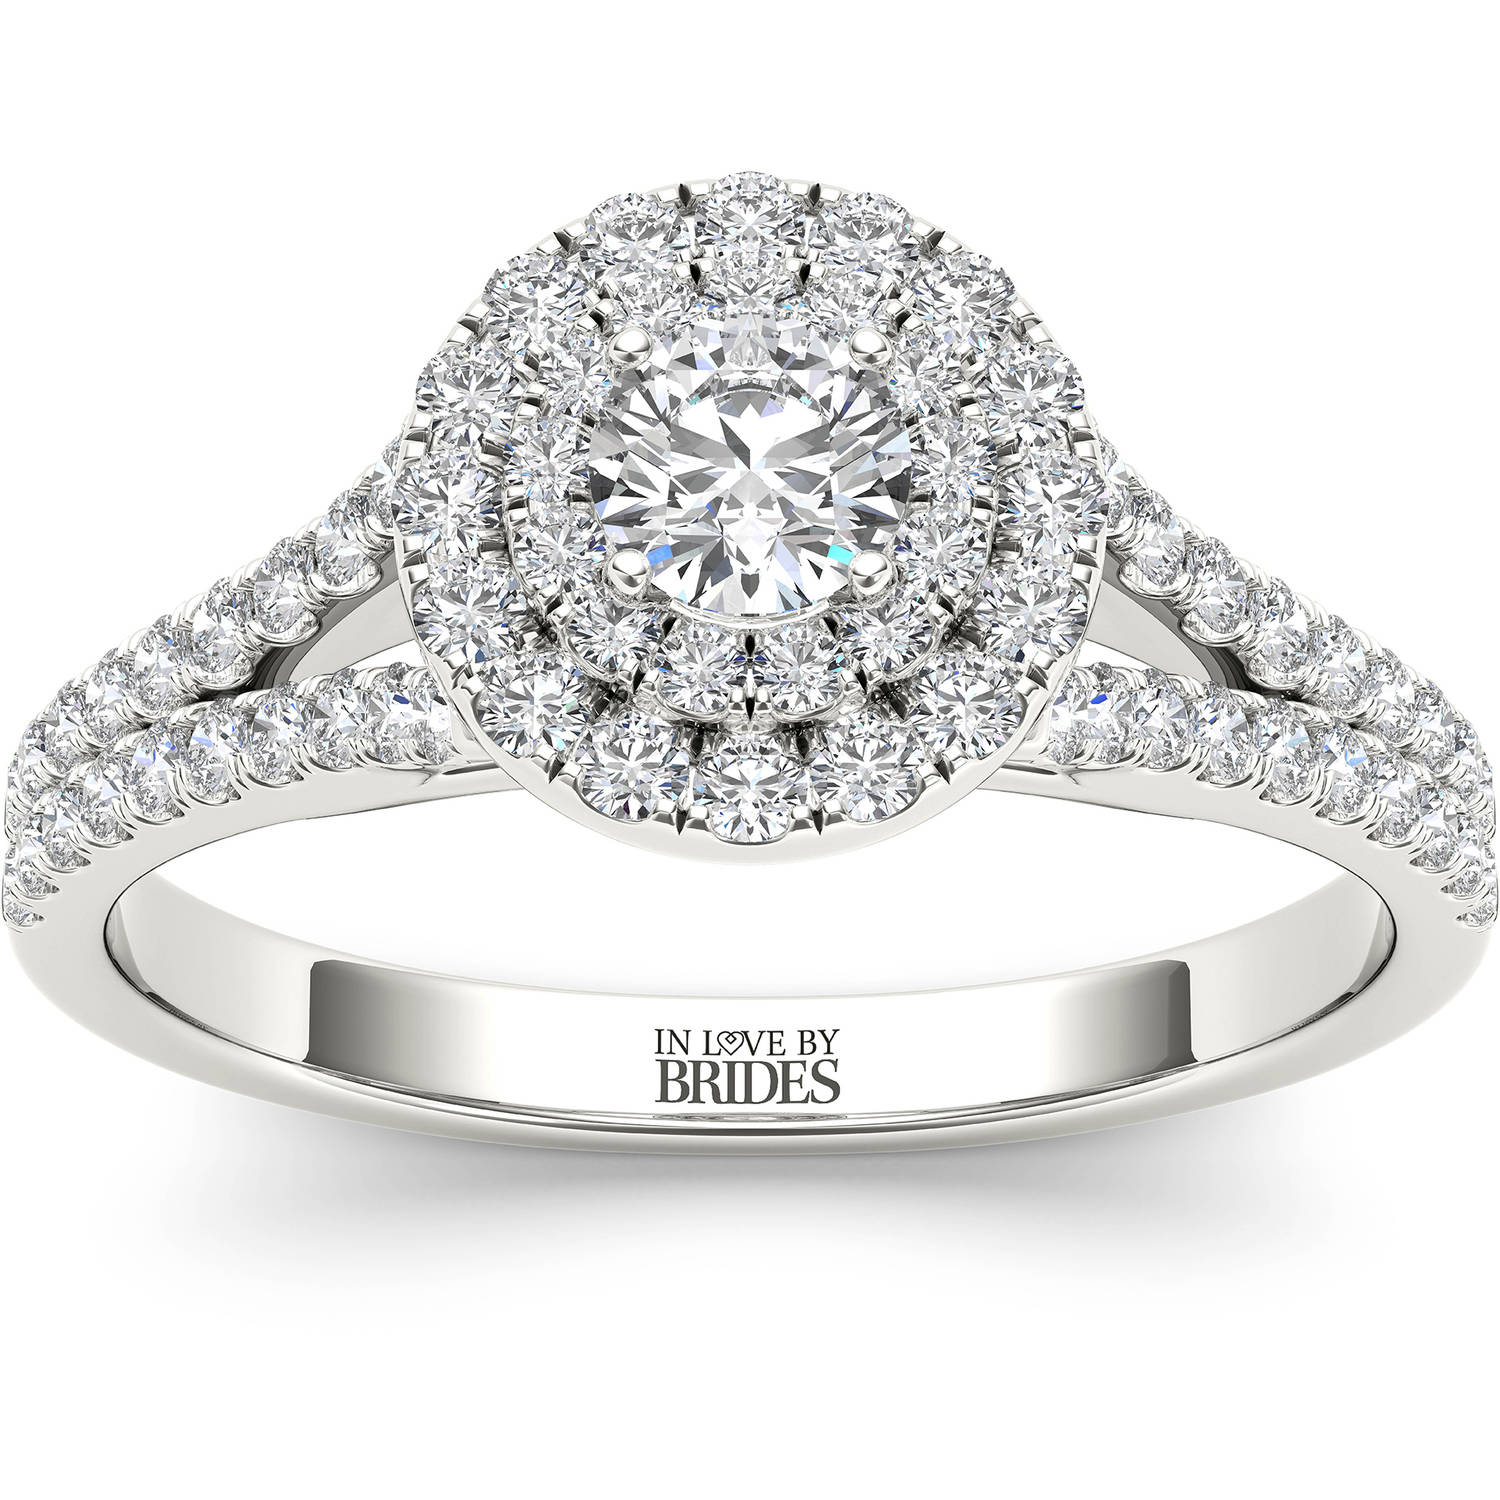 IN LOVE BY BRIDES 3/4 Carat T.W. Certified Diamond Round Spilt Shank Double Halo 14kt White Gold Engagement Ring